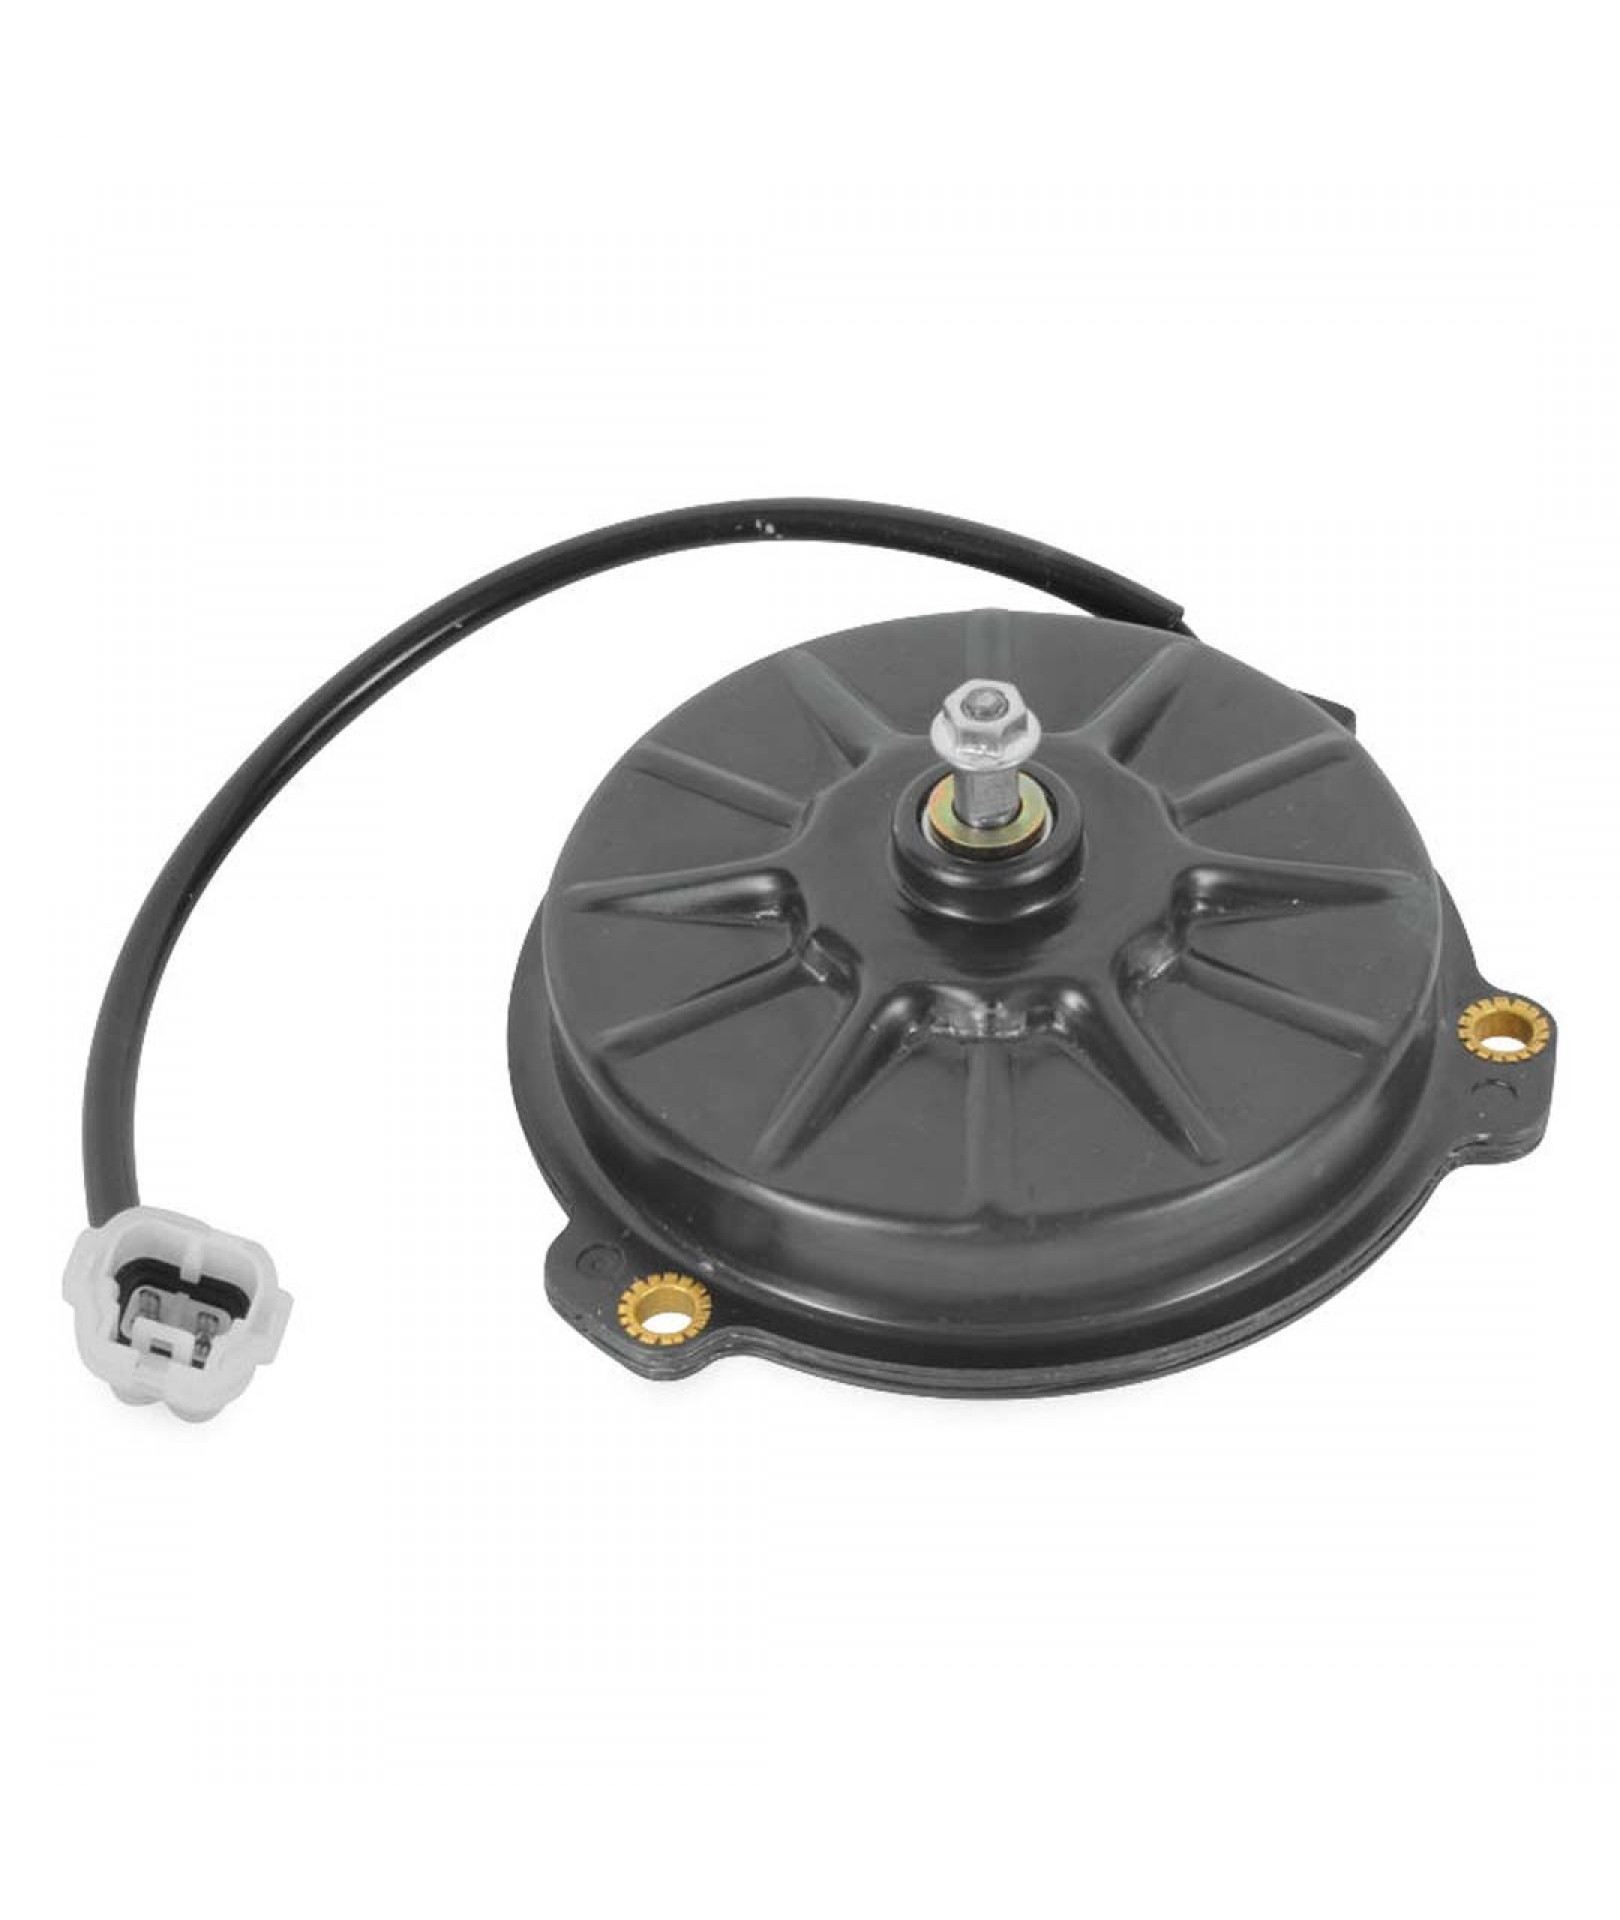 Fan Motor Product : Cooling fan motor only electrical products